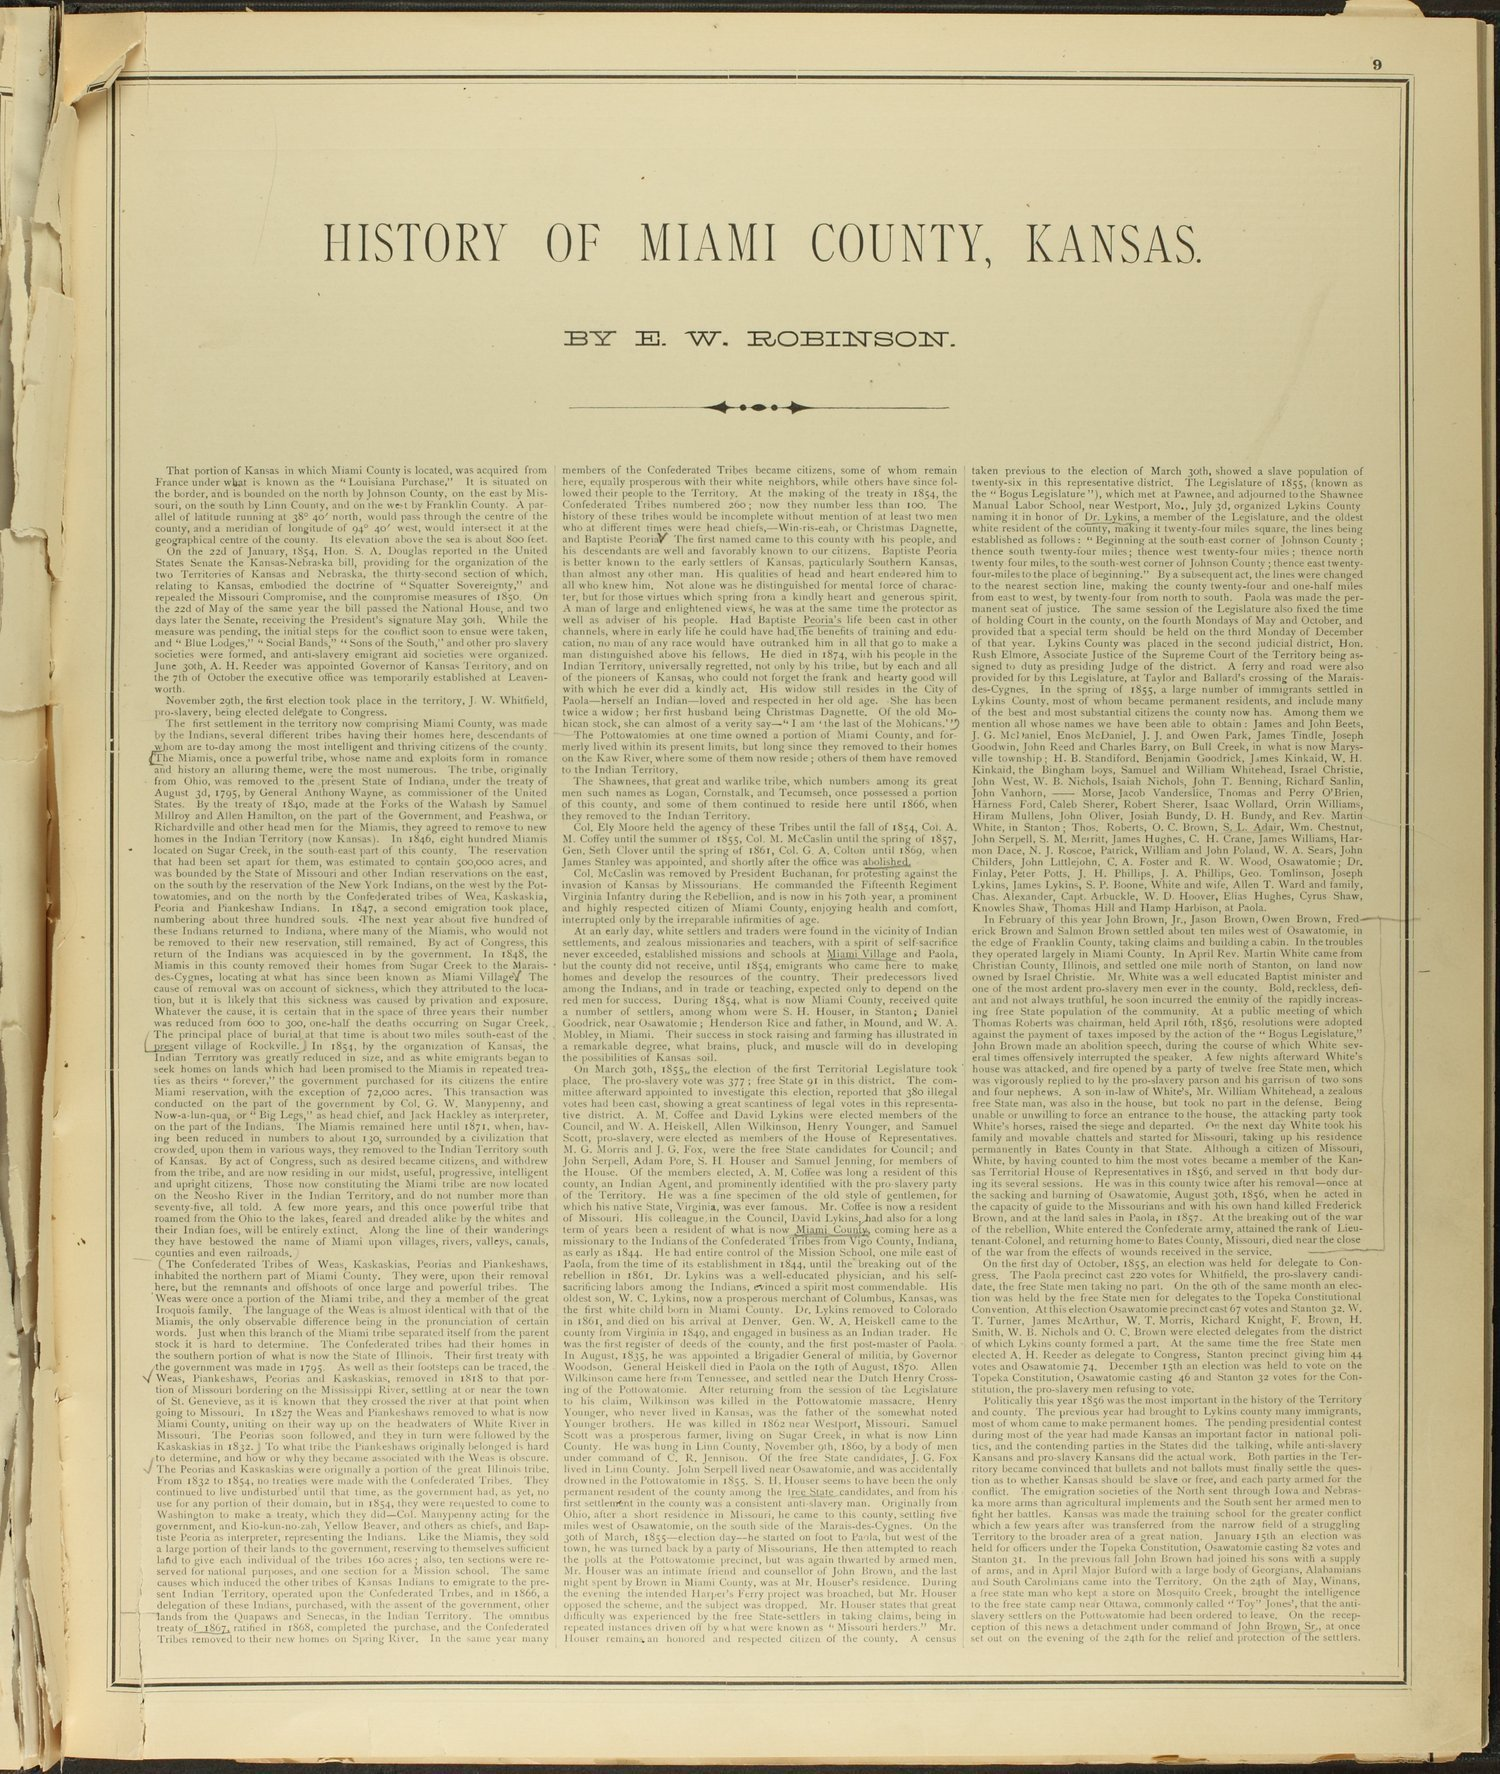 An illustrated historical atlas of Miami County, Kansas - 9